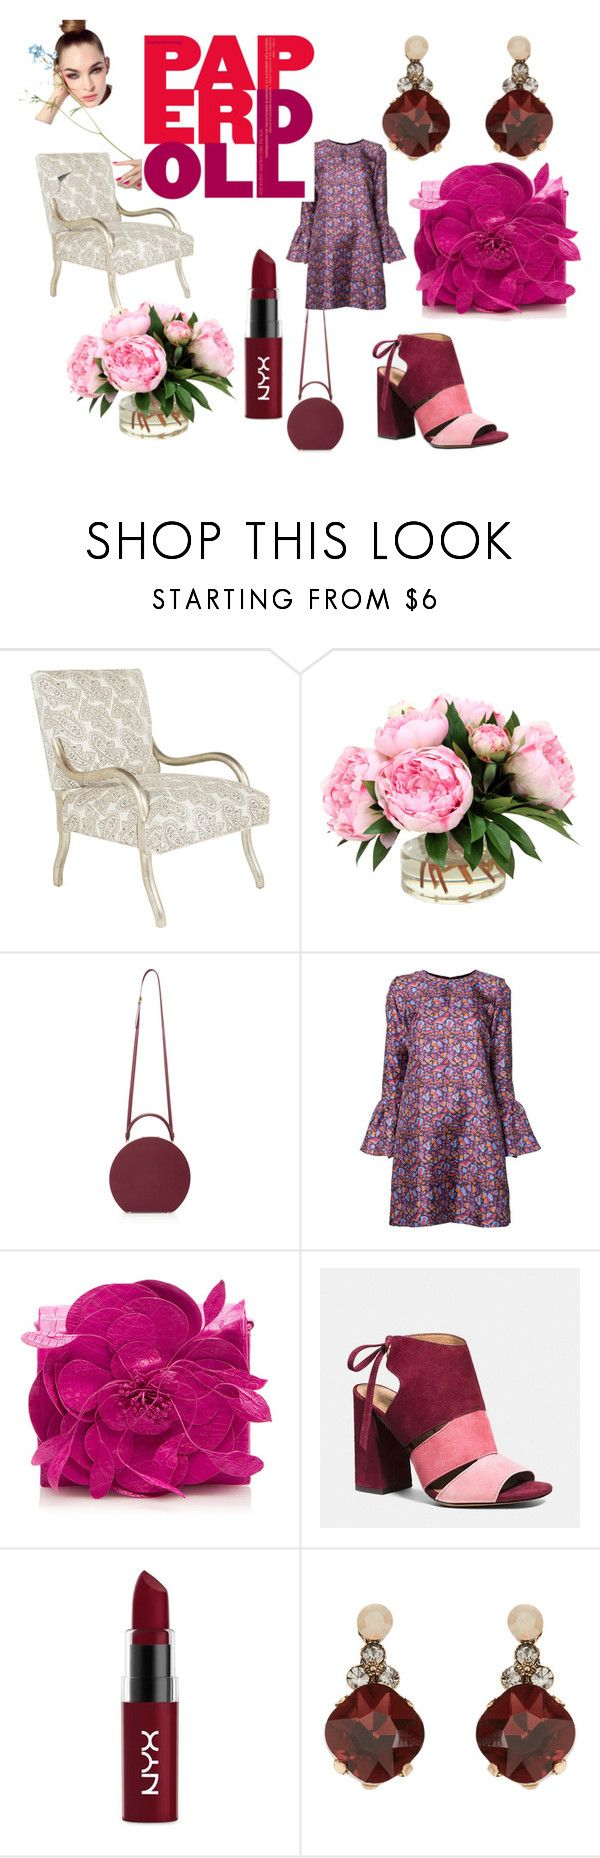 """Burgundy"" by malargo23 ❤ liked on Polyvore featuring La DoubleJ, Nancy Gonzalez, Coach, NYX, Accessorize, SANDAL, bellsleeve and butterlipstick"